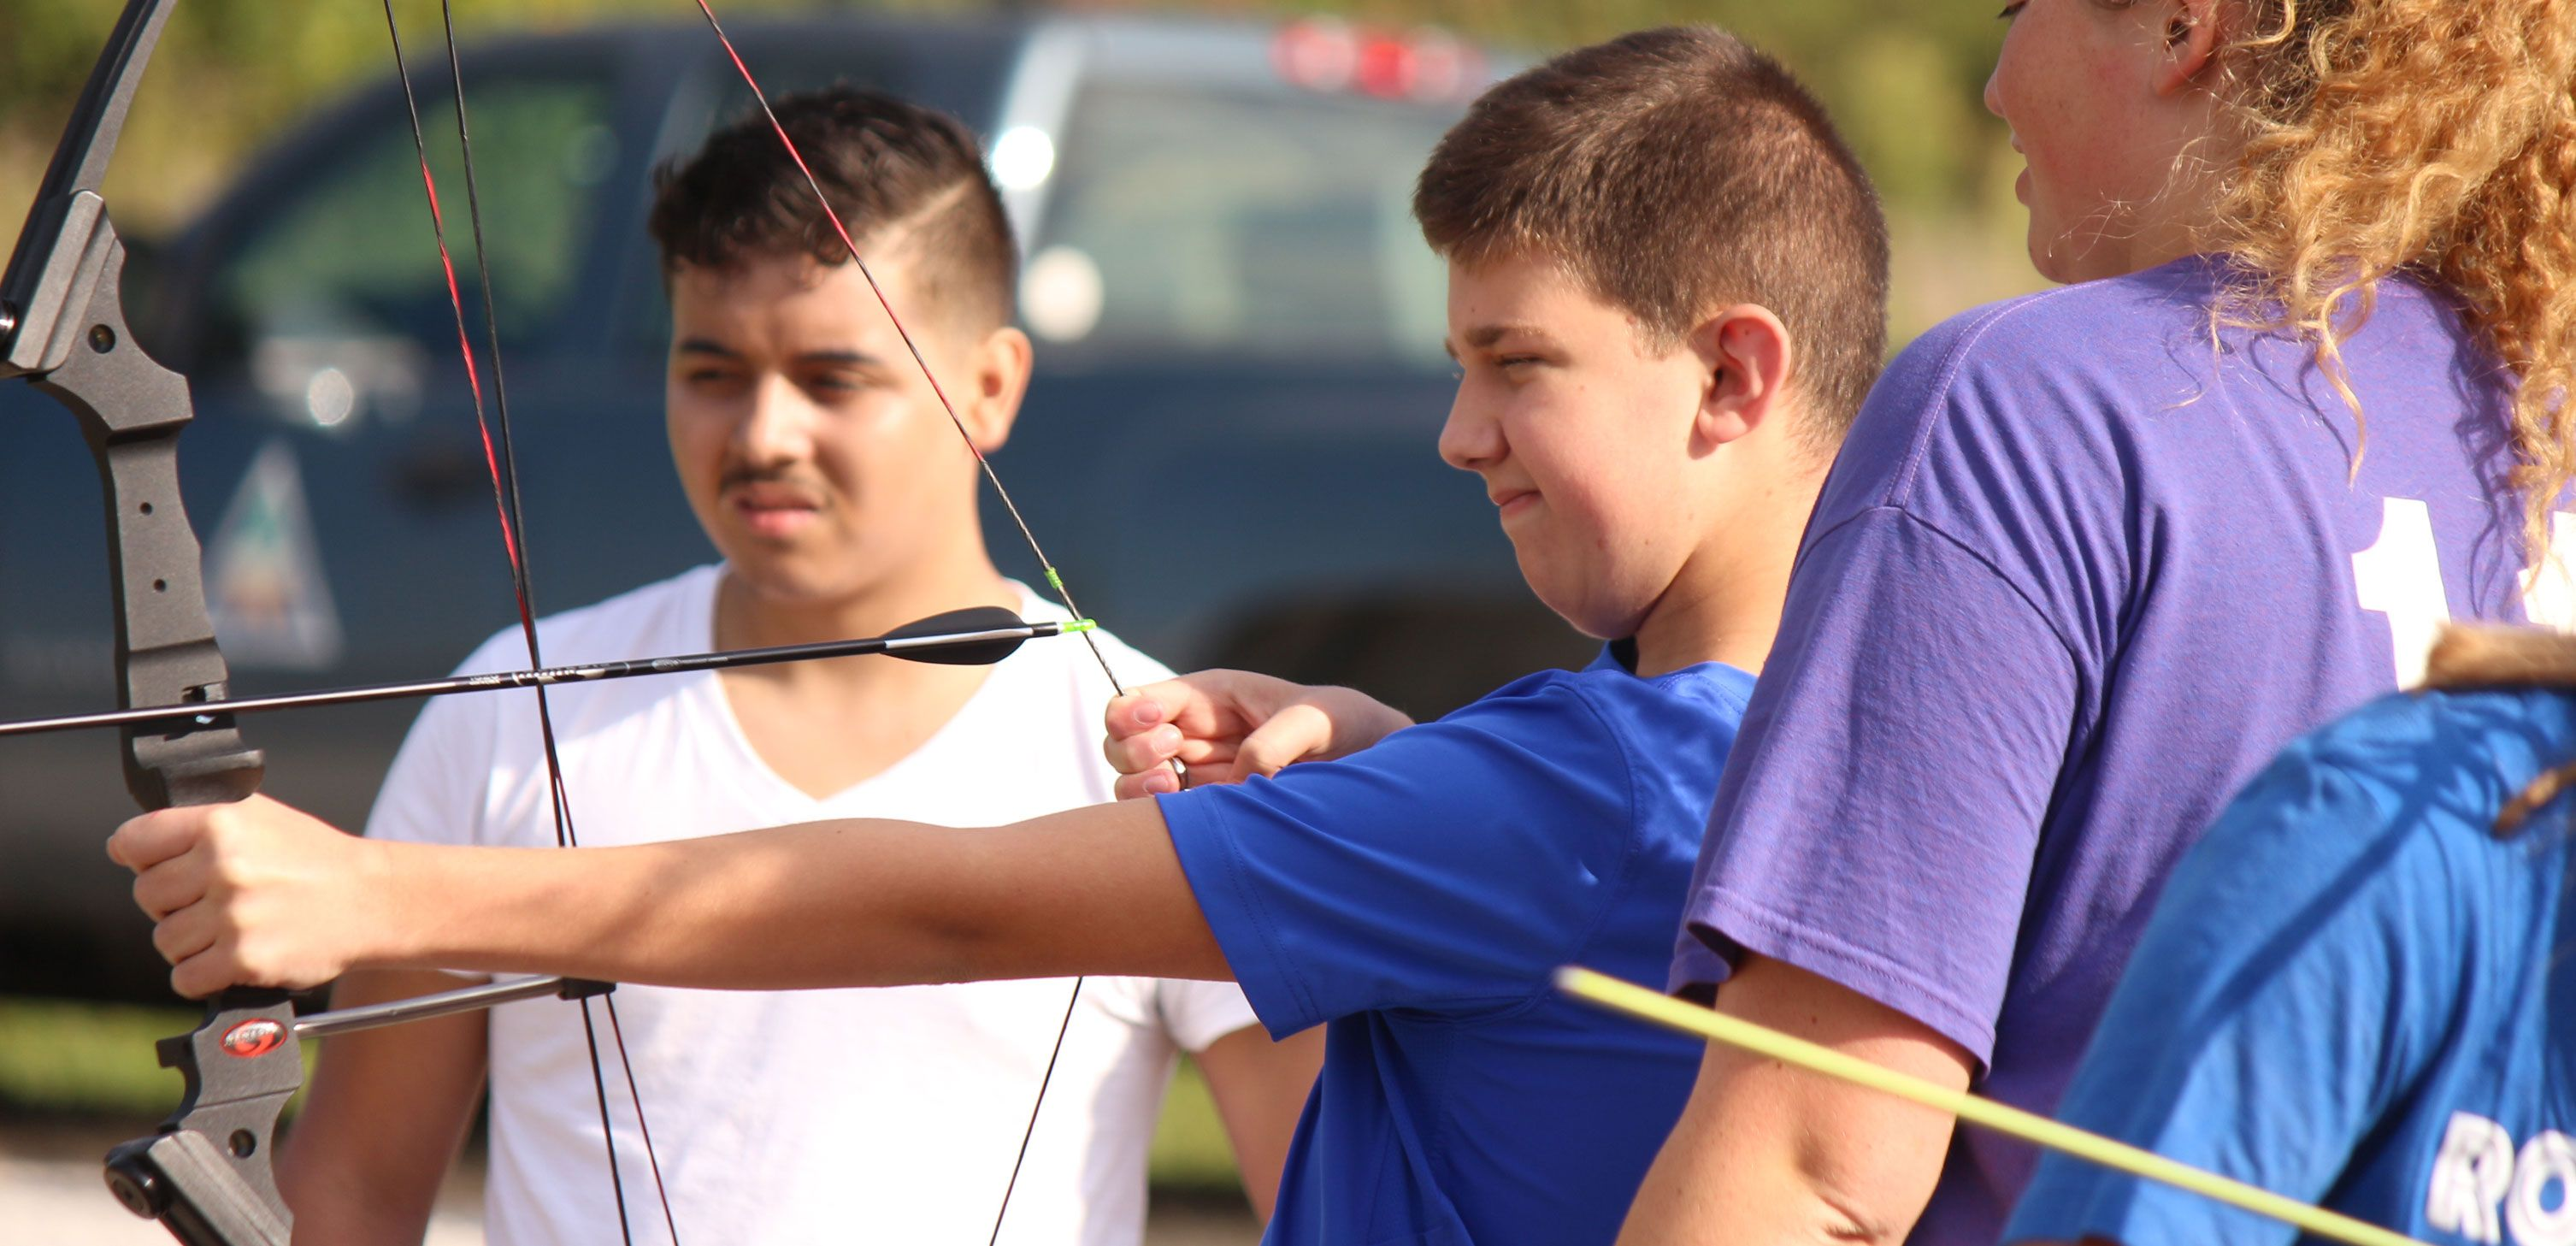 Young boy learning to shoot arrow